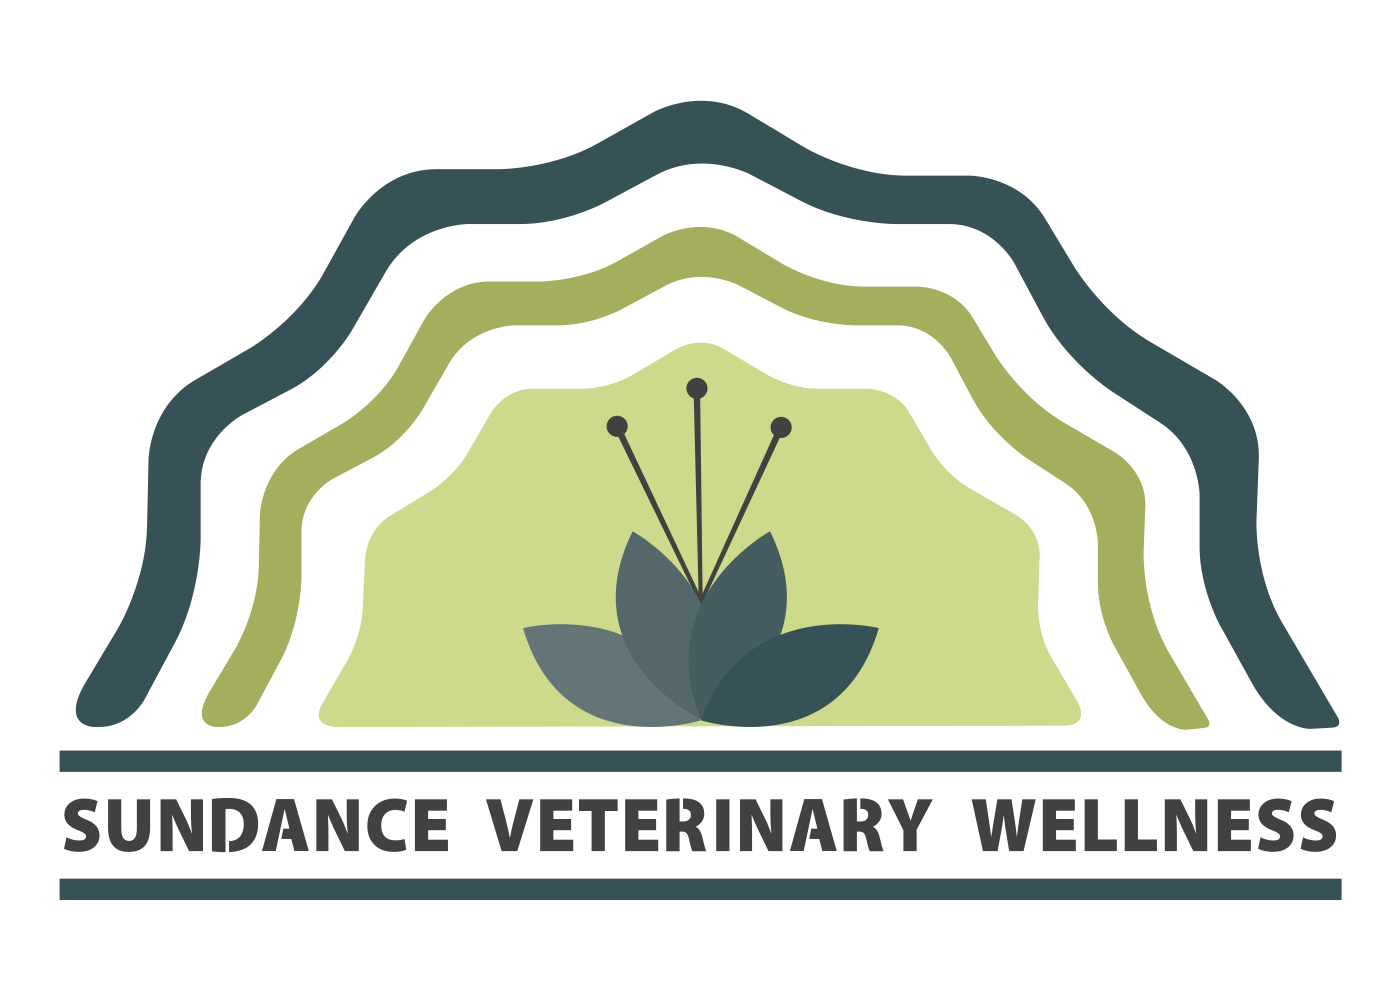 Sundance Veterinary Wellness Selects Our Software to Power its Growing Practice